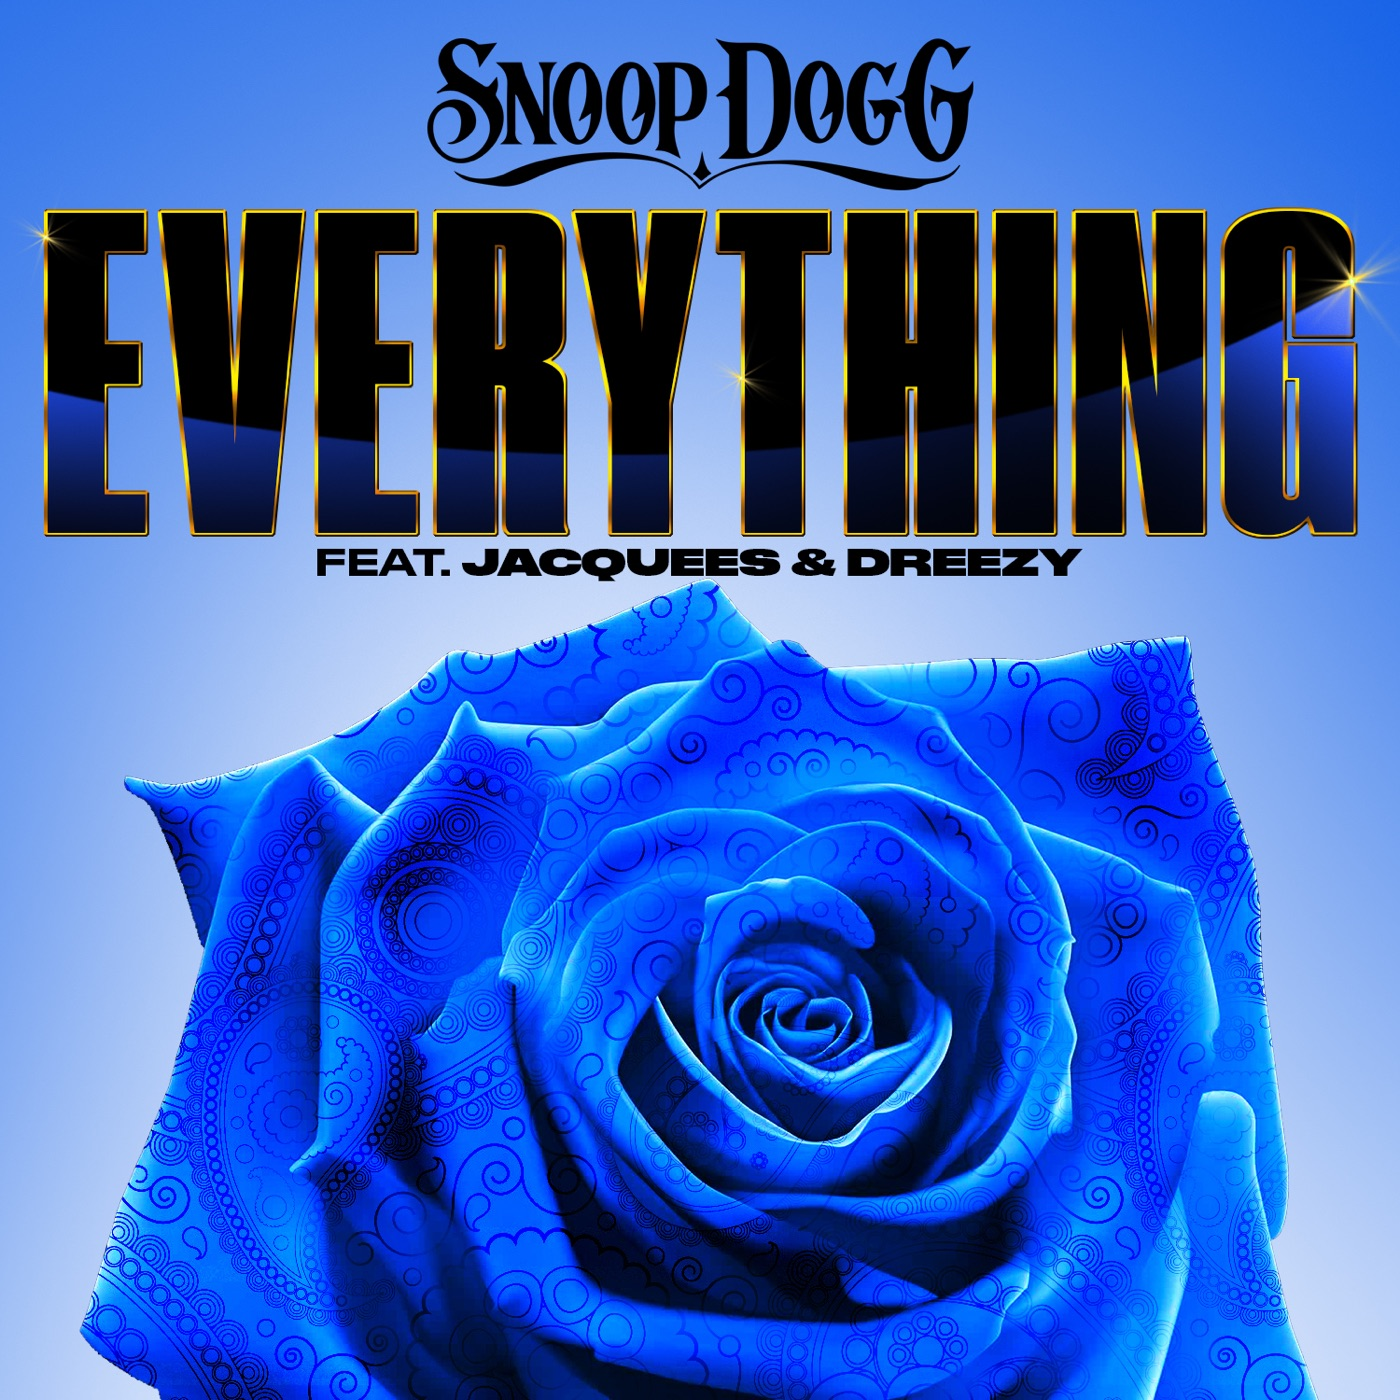 Snoop Dogg - Everything (feat. Jacquees & Dreezy) - Single Cover